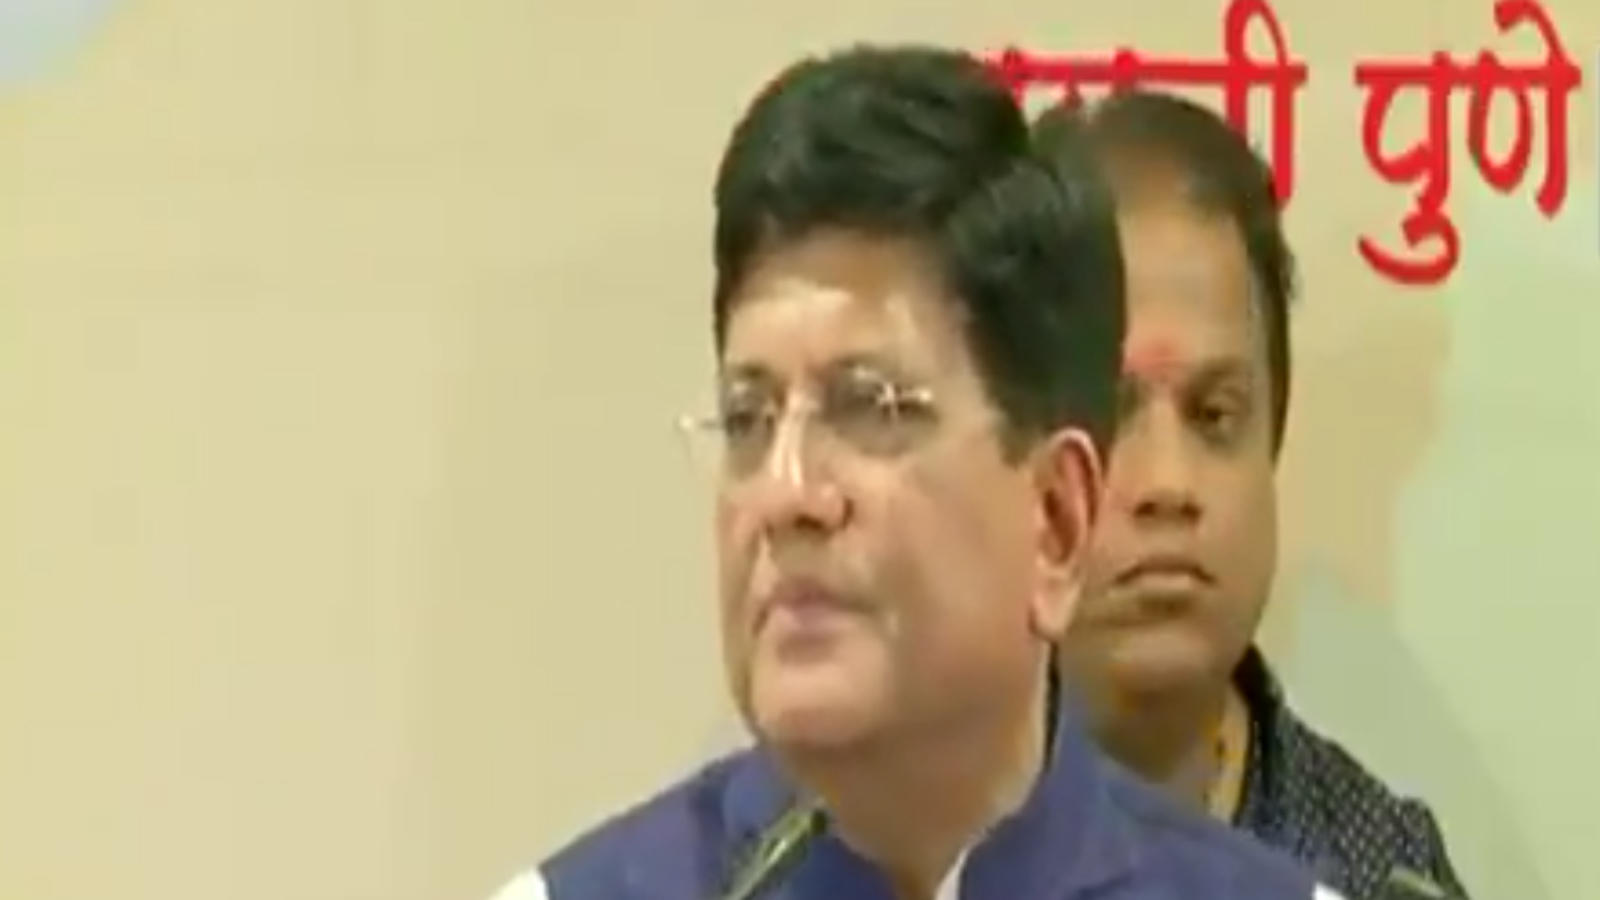 abhijit-banerjee-is-left-leaning-says-union-minister-piyush-goyal